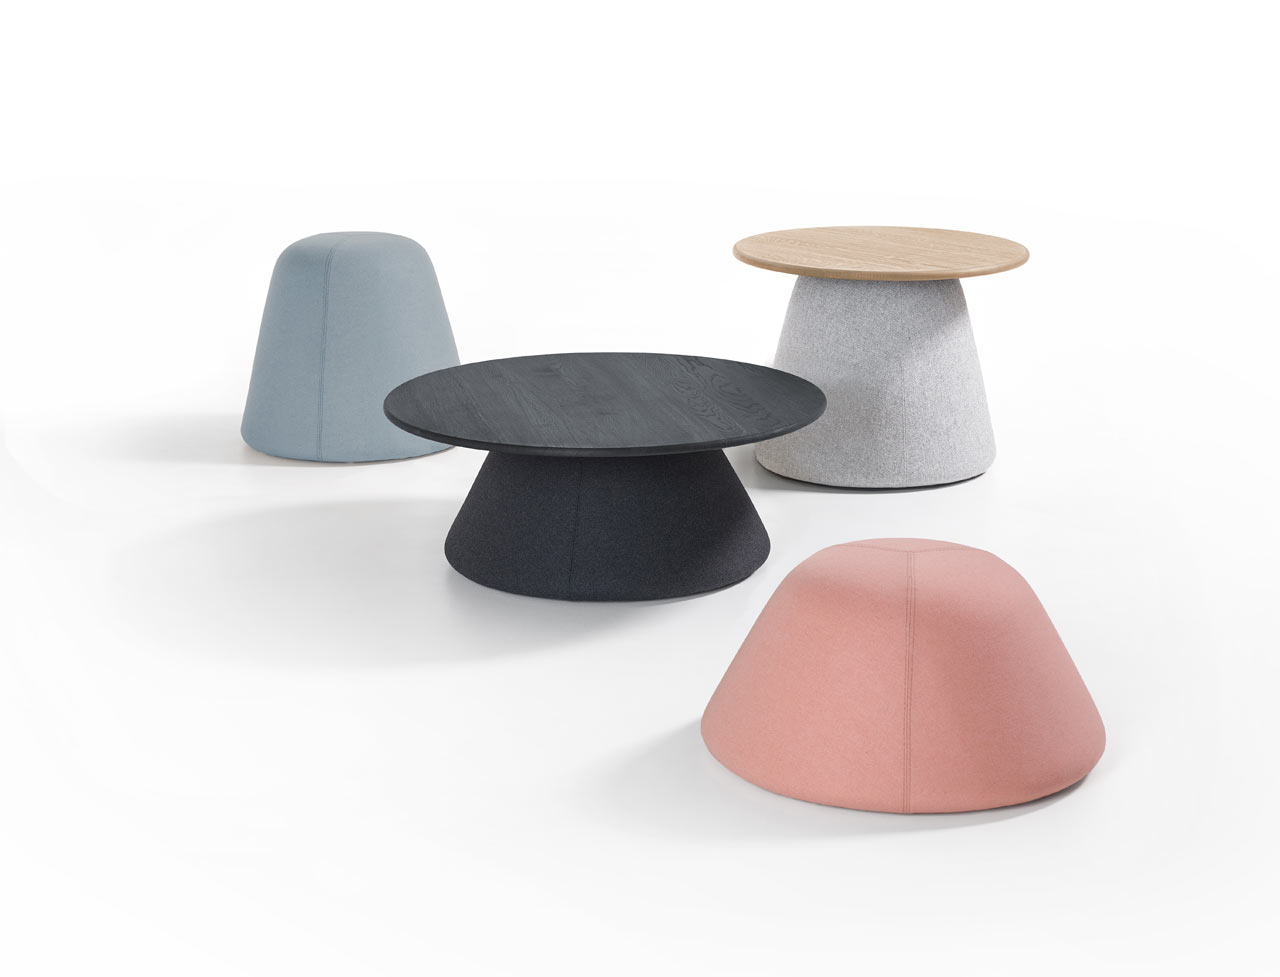 Terp Upholstered Tables and Poufs Inspired by Dutch Mounds